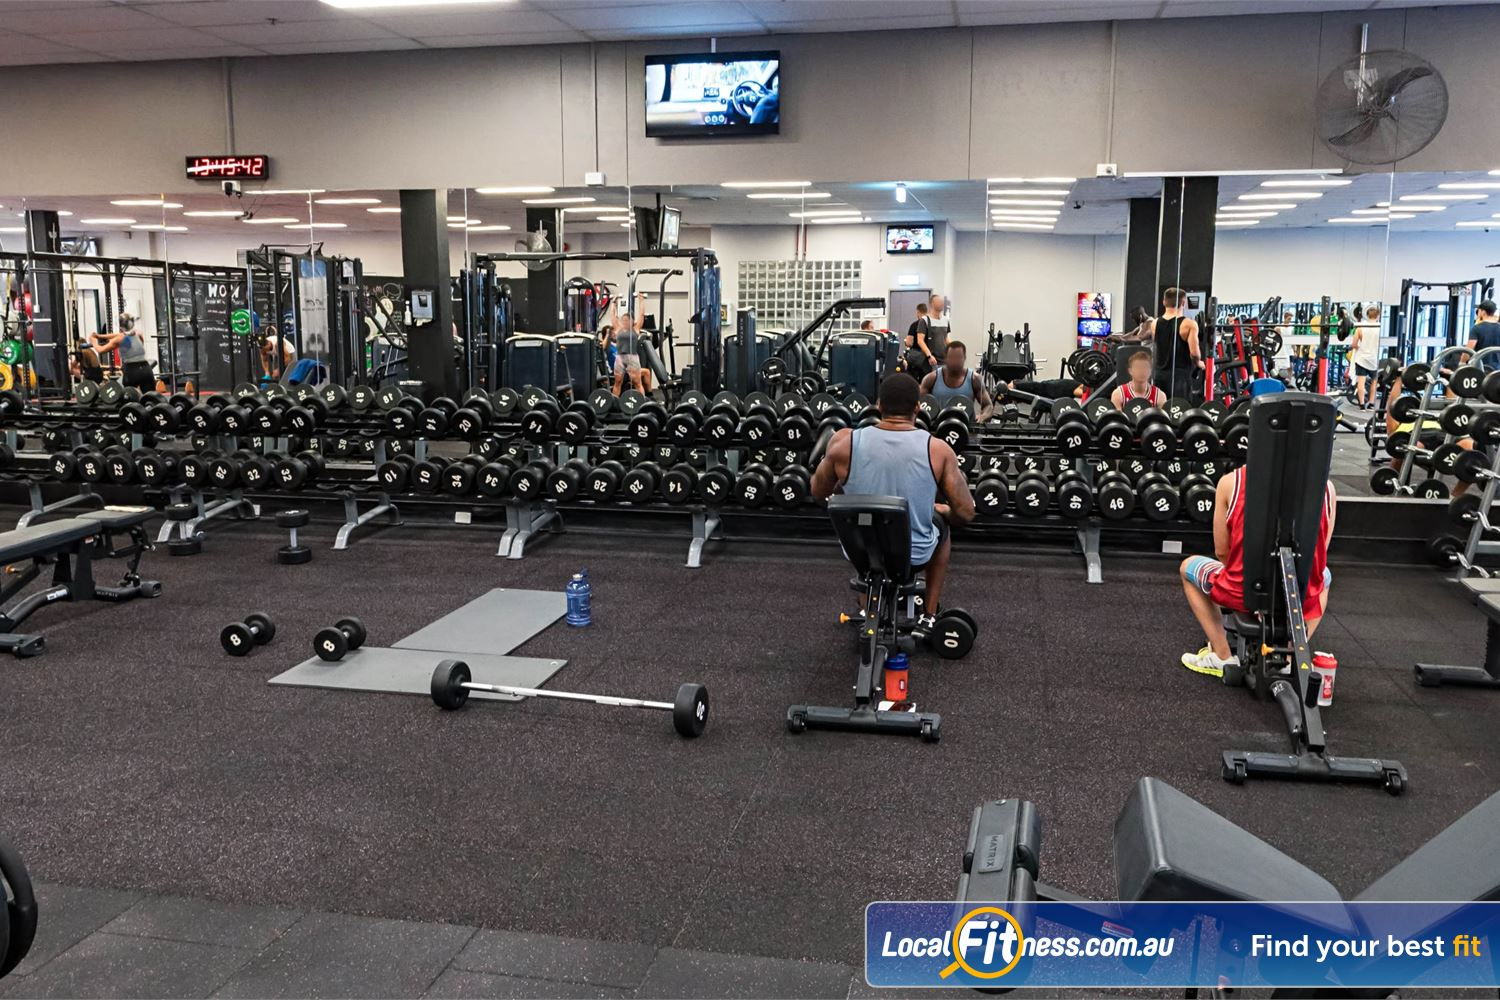 Fitness First Platinum Spring St Near Bellevue Hill Our Bondi gym provides multiple strength zones including the free-weights zone.